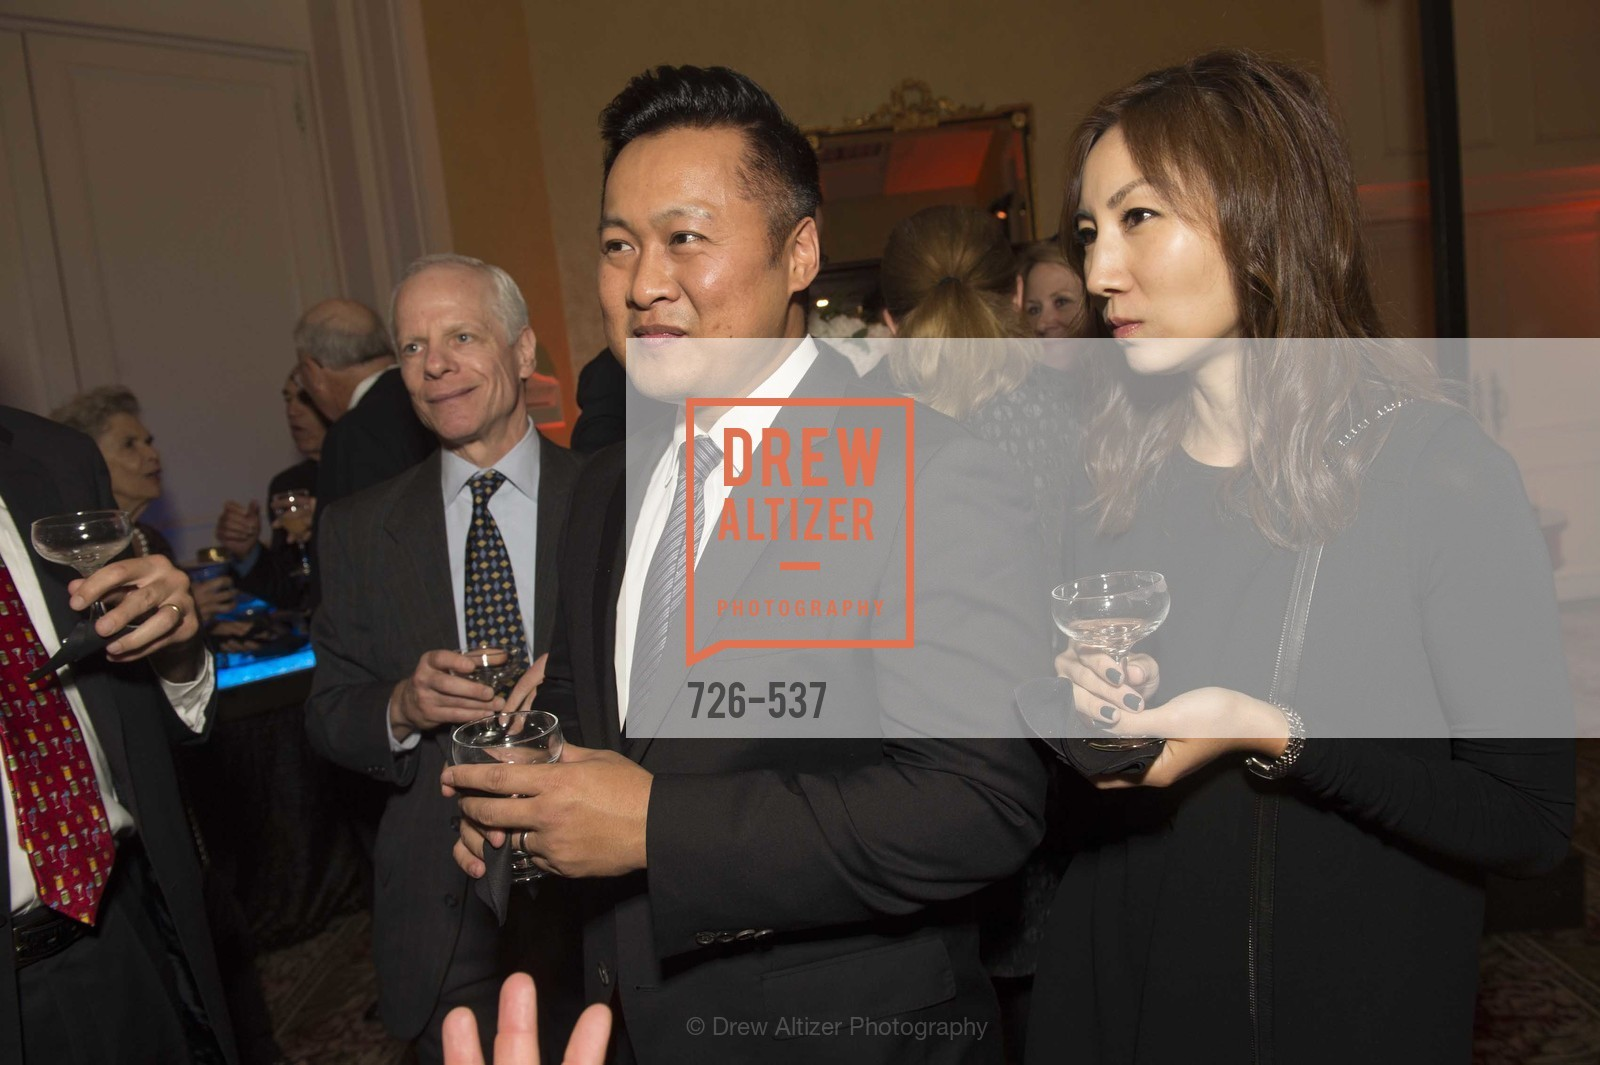 Extras, TOP OF THE MARK'S 75TH Anniversary Party, November 6th, 2014, Photo,Drew Altizer, Drew Altizer Photography, full-service agency, private events, San Francisco photographer, photographer california